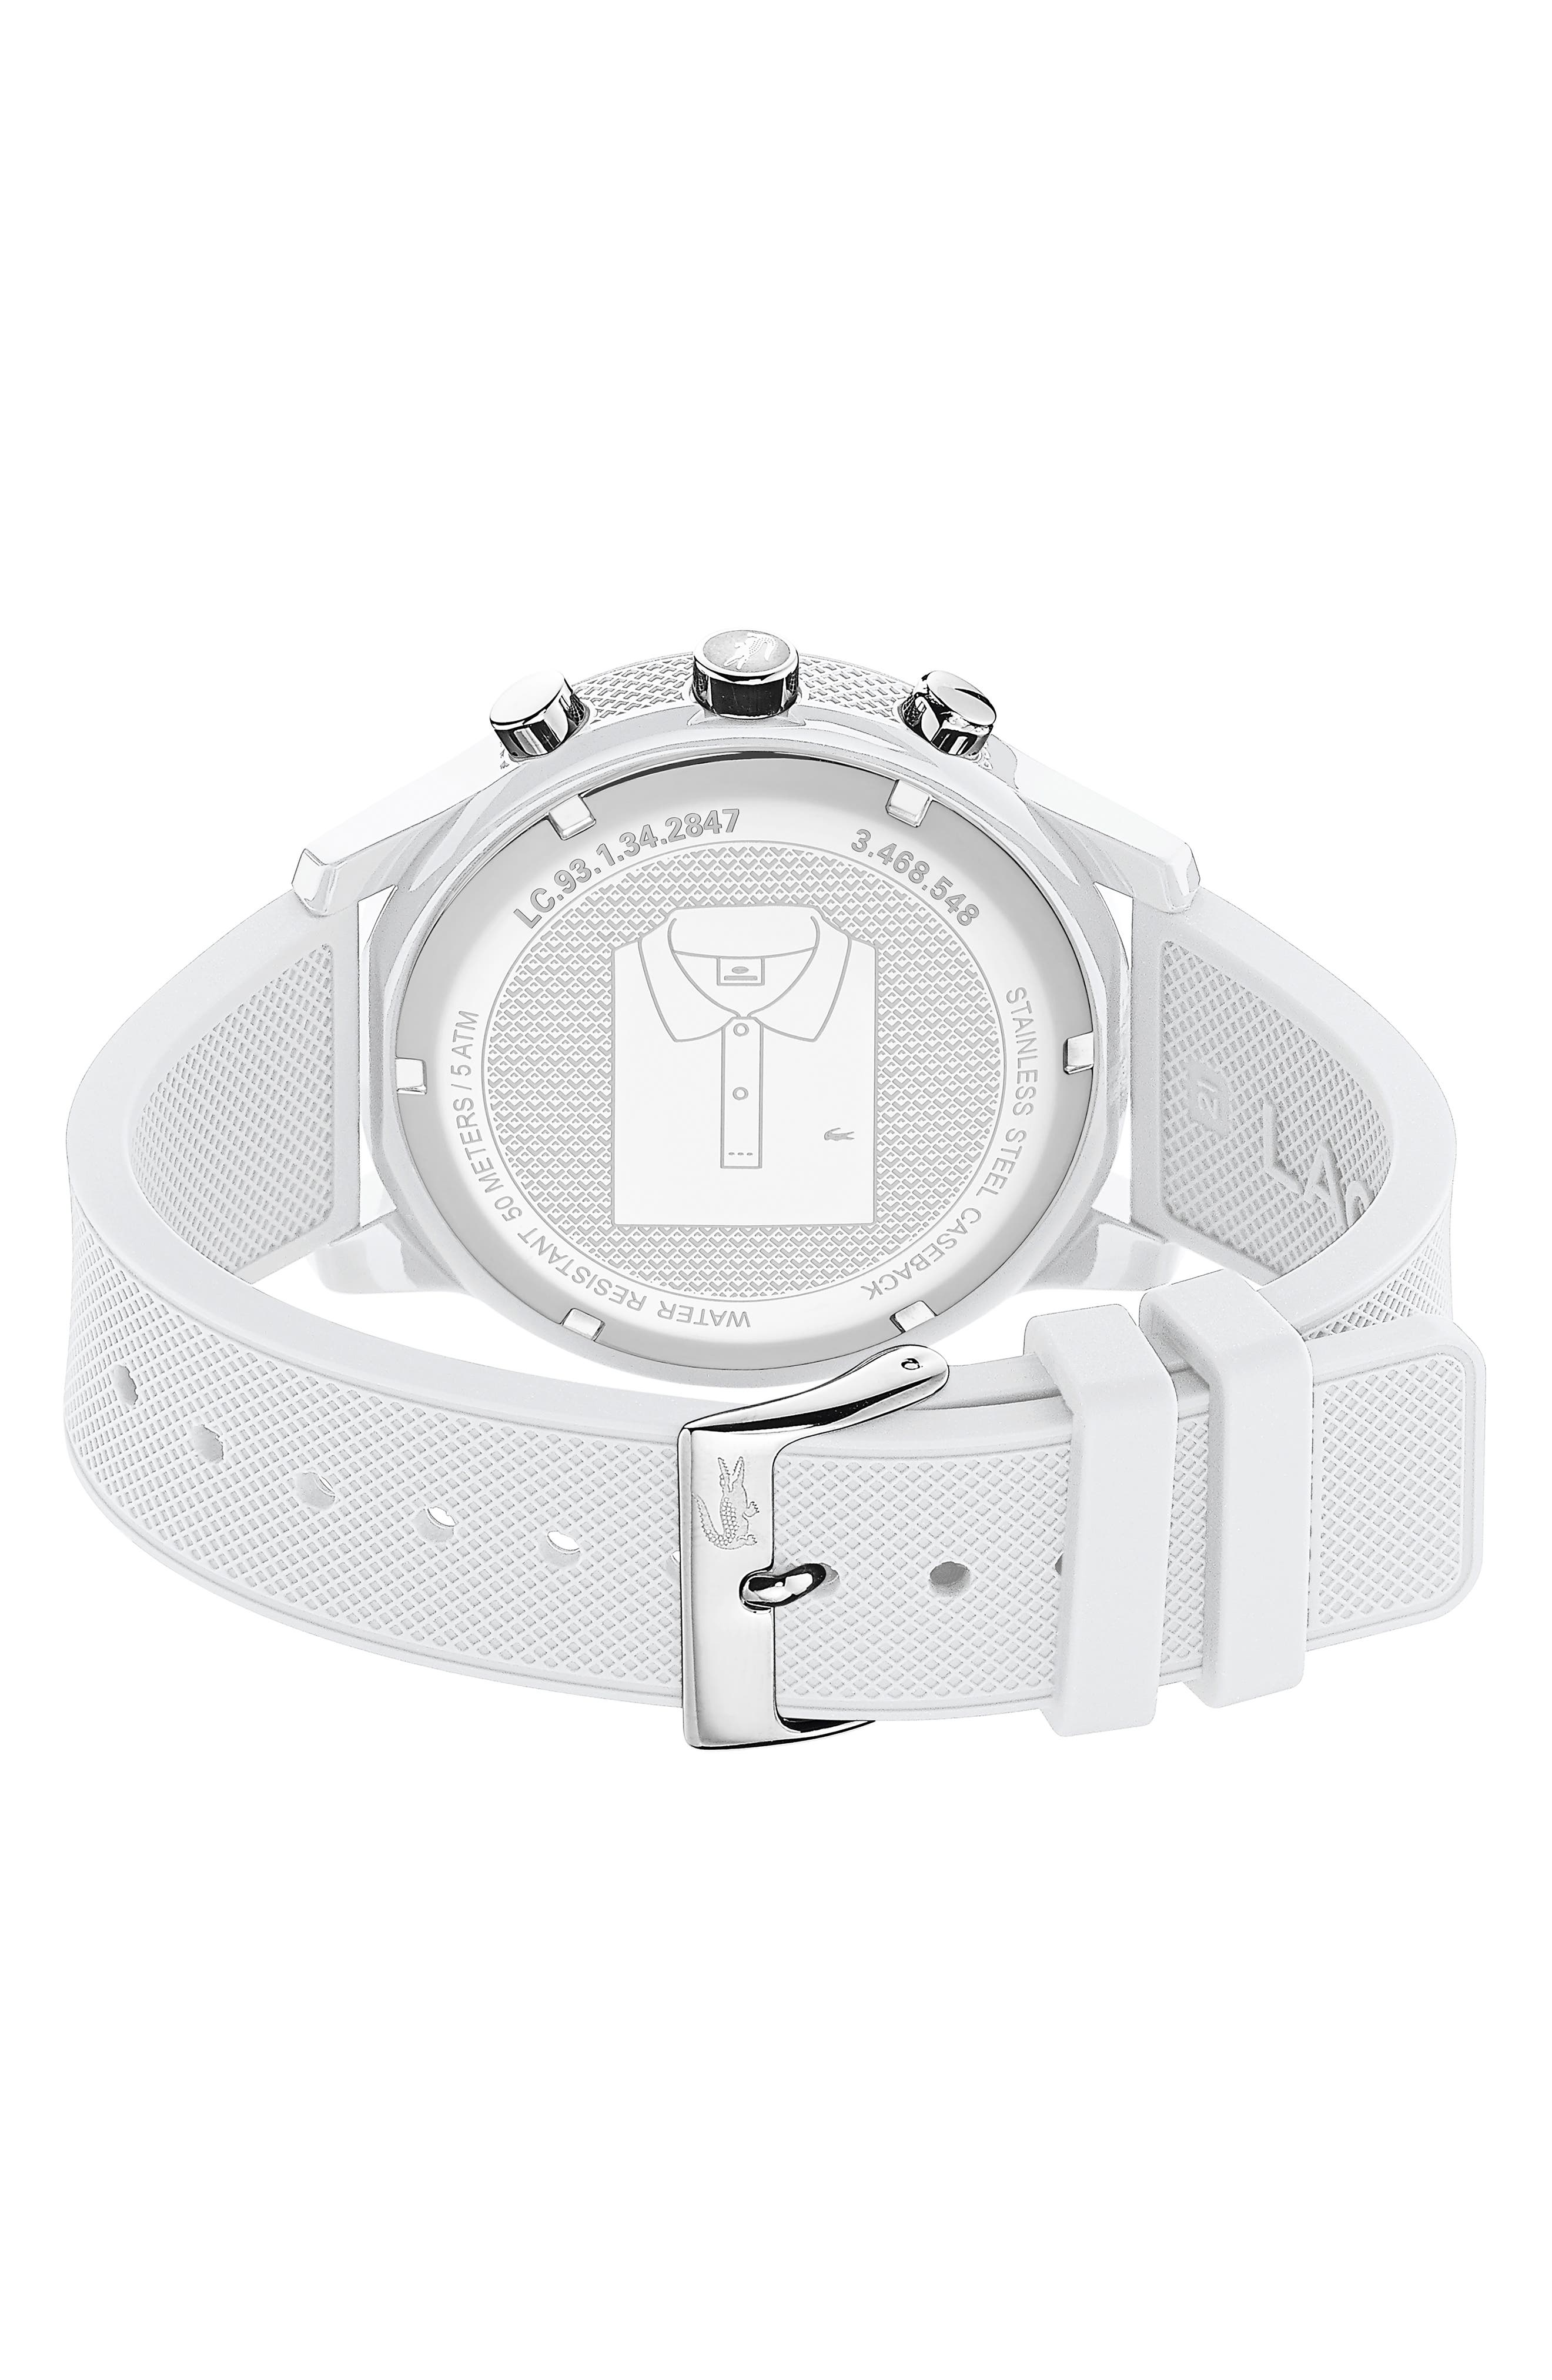 LACOSTE, 12.12 Chronograph Silicone Band Watch, 44mm, Alternate thumbnail 2, color, WHITE